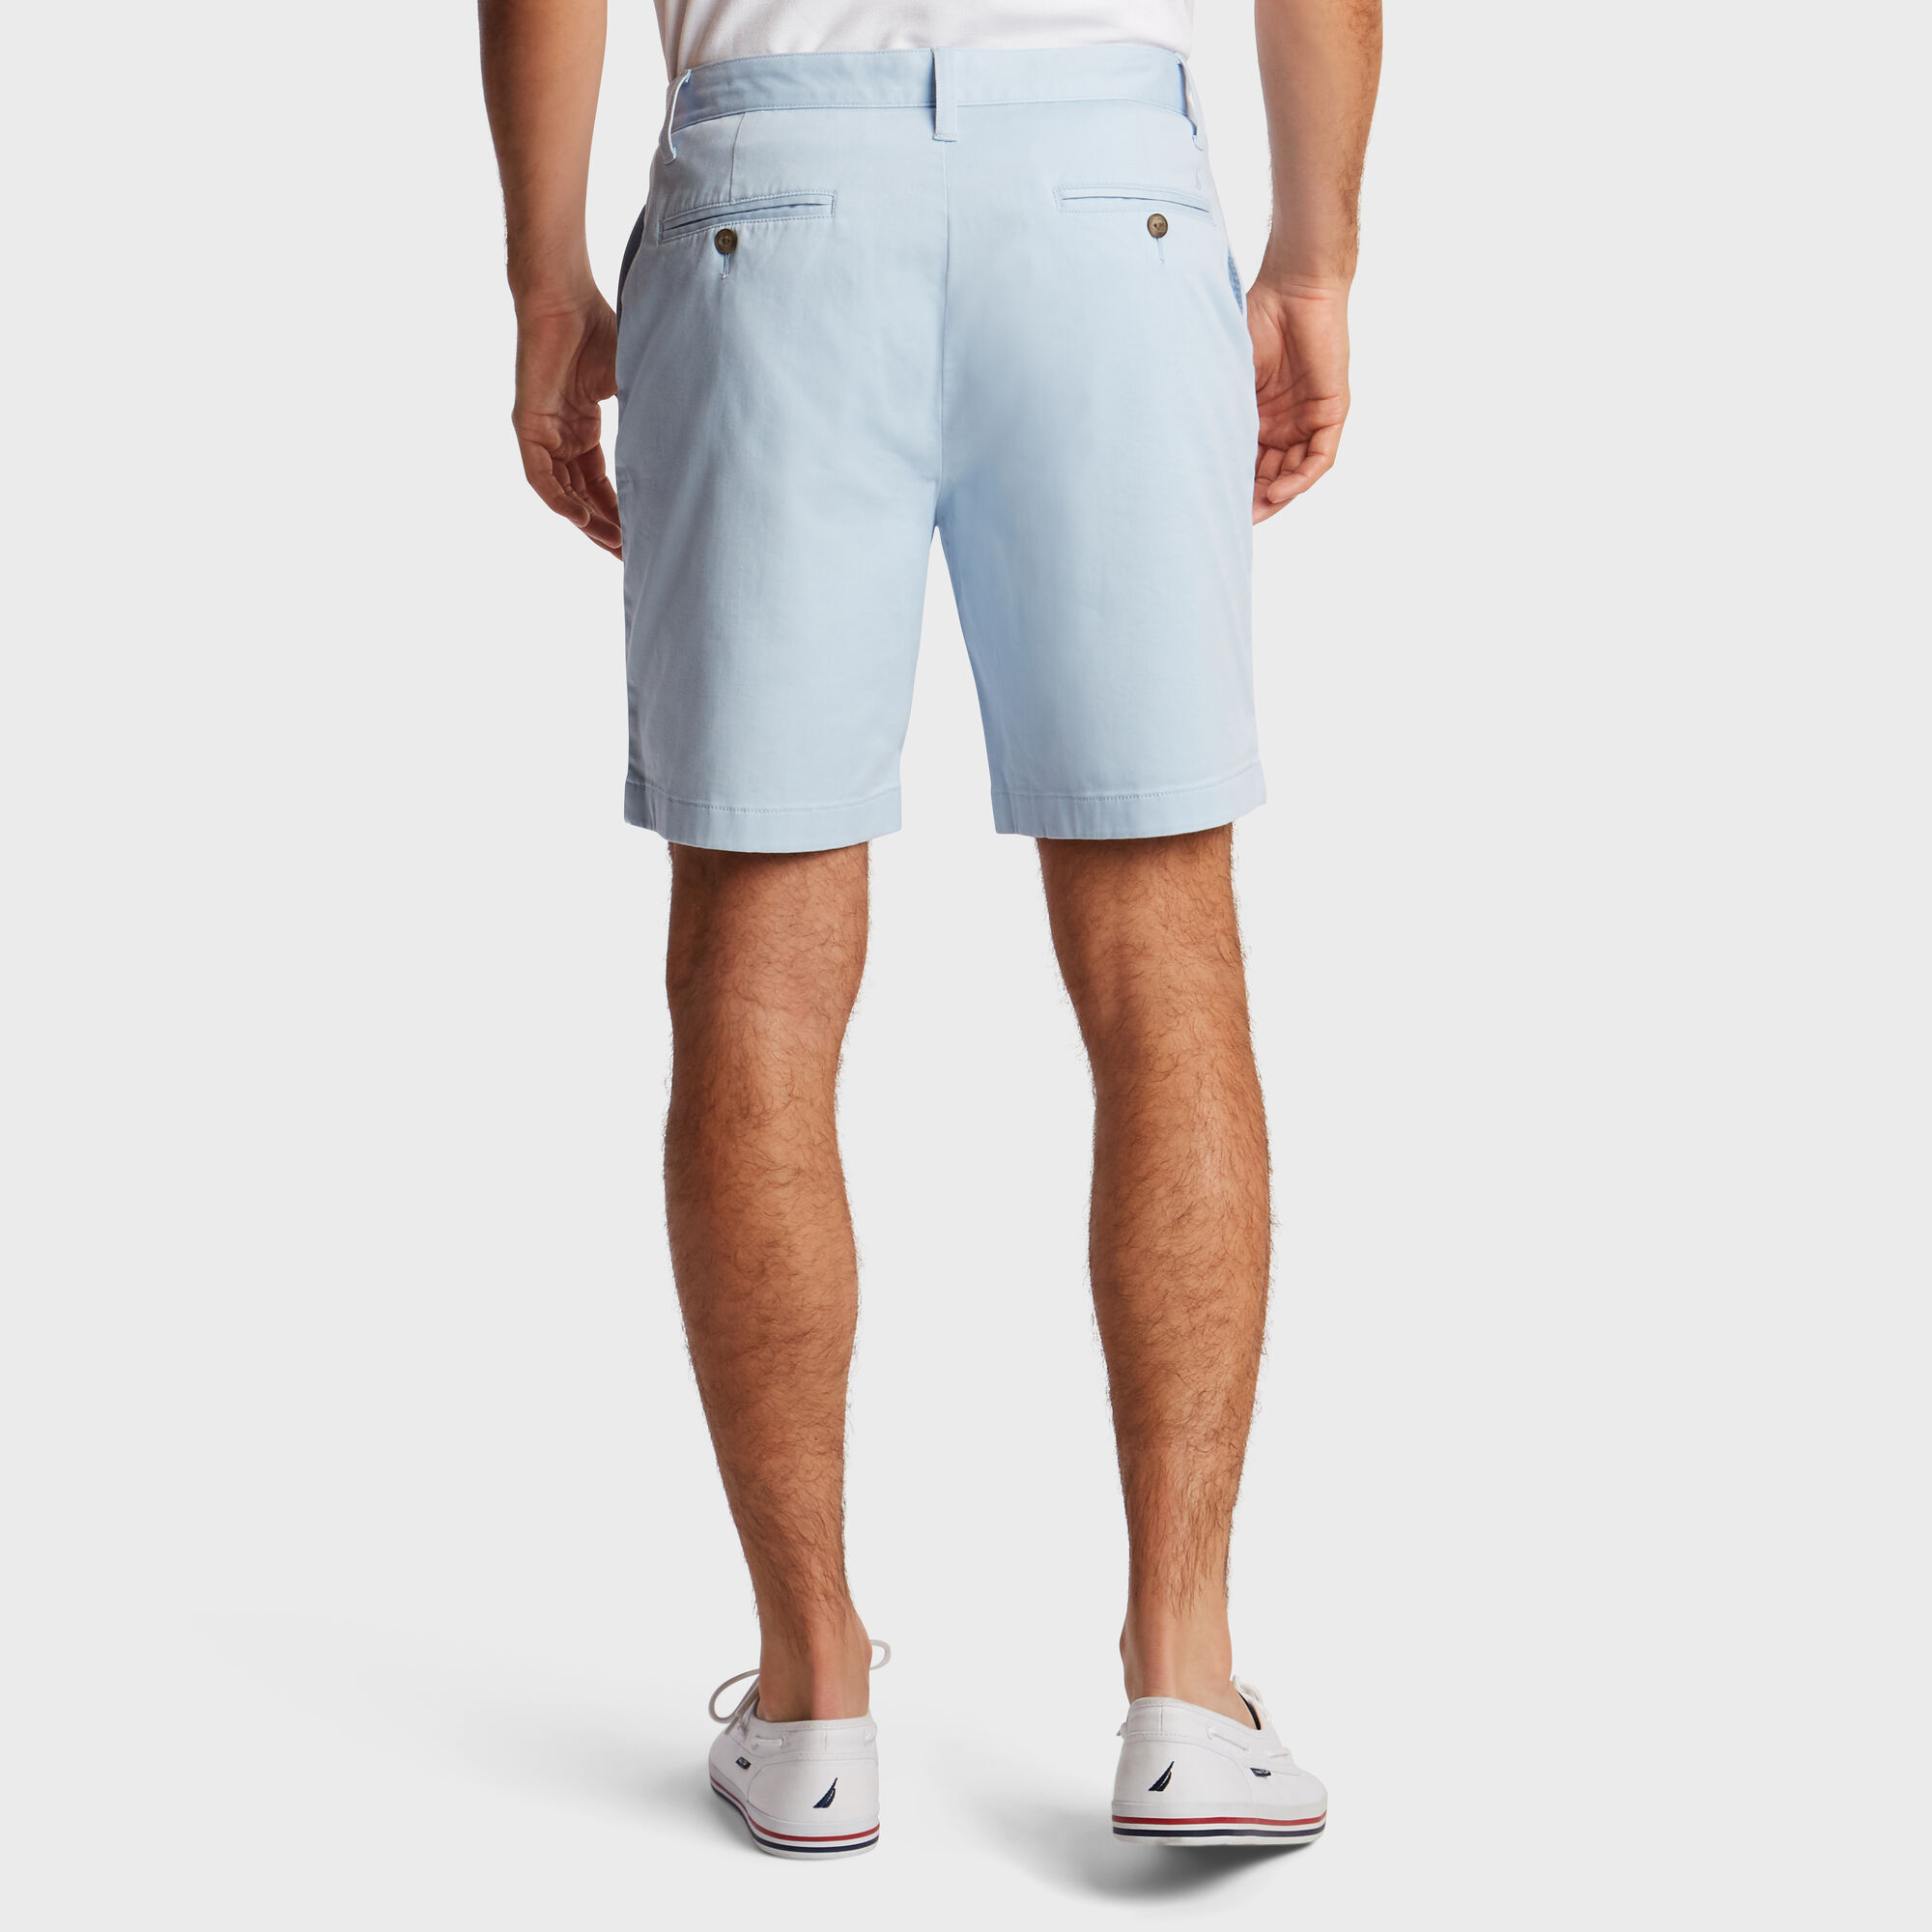 Nautica-Mens-8-5-034-Classic-Fit-Deck-Short-With-Stretch thumbnail 32